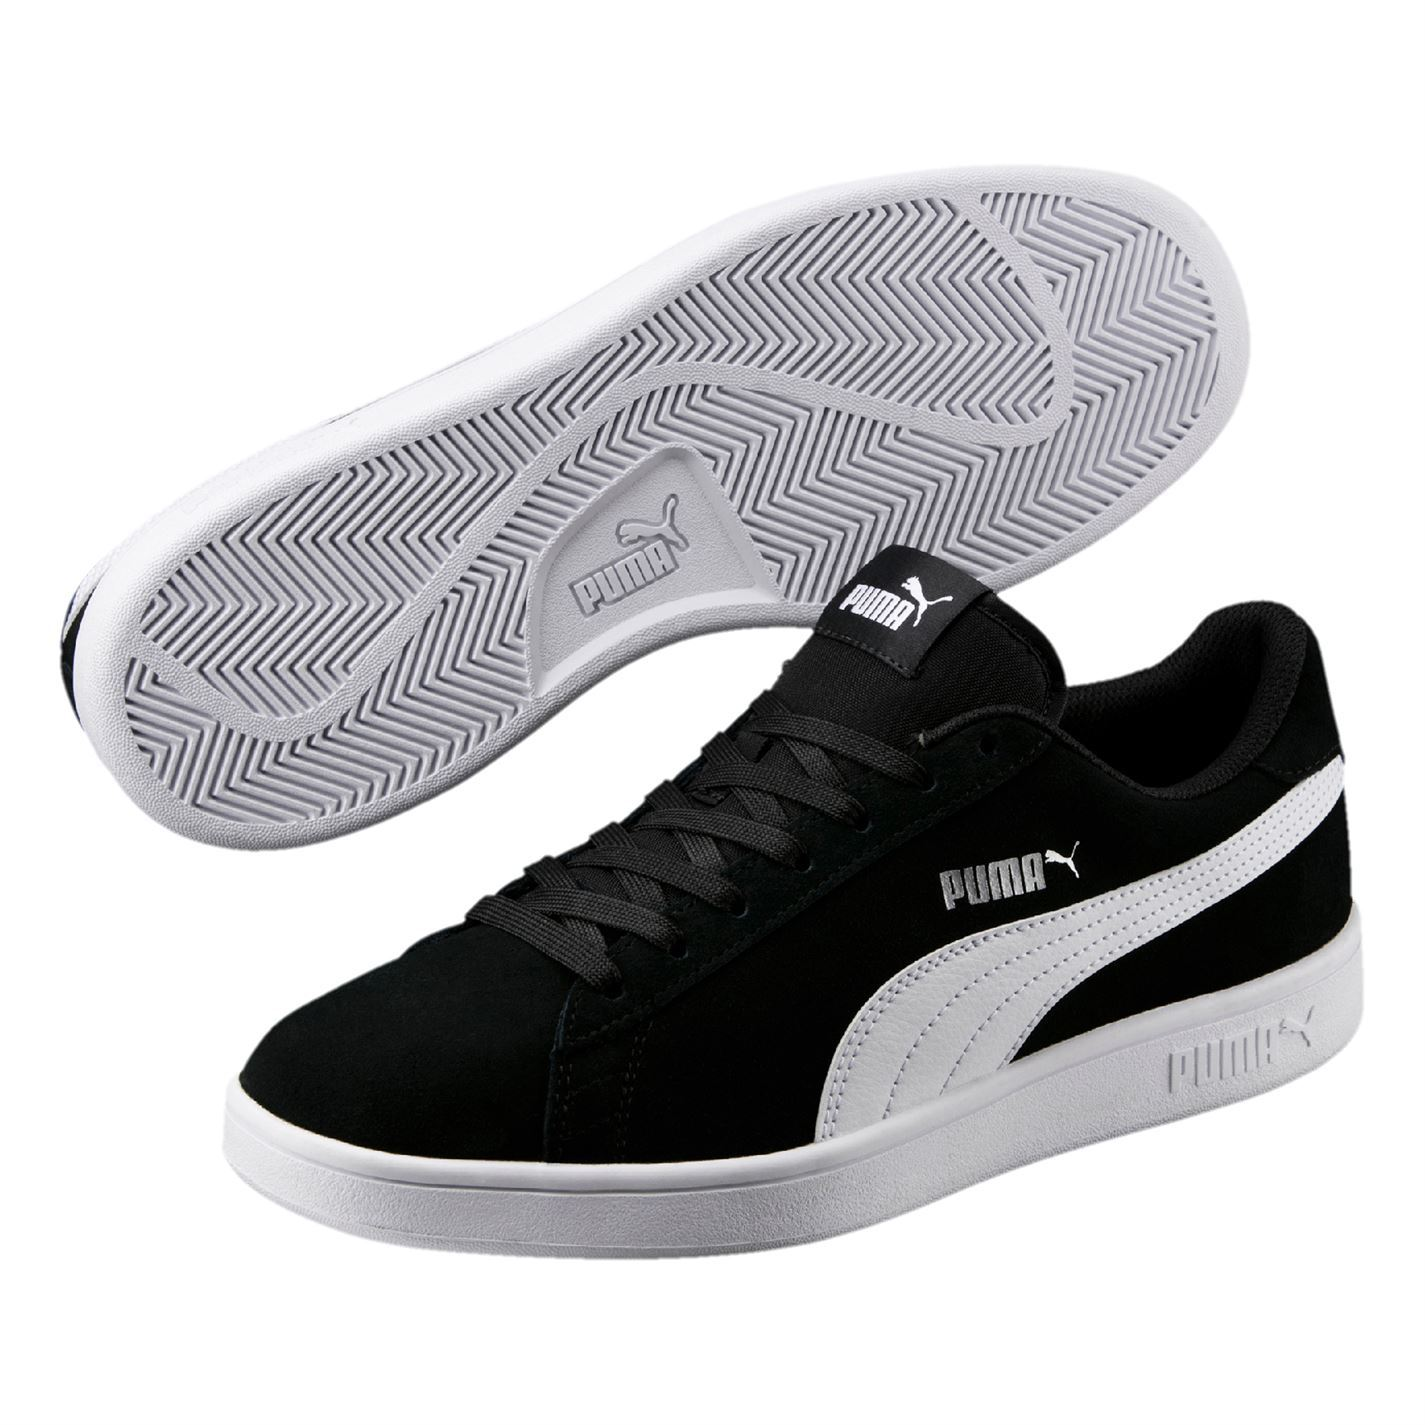 rivenditore all'ingrosso 476ef ac05c Puma Smash V2 Suede Mens Trainers Shoes Black/White Casual ...